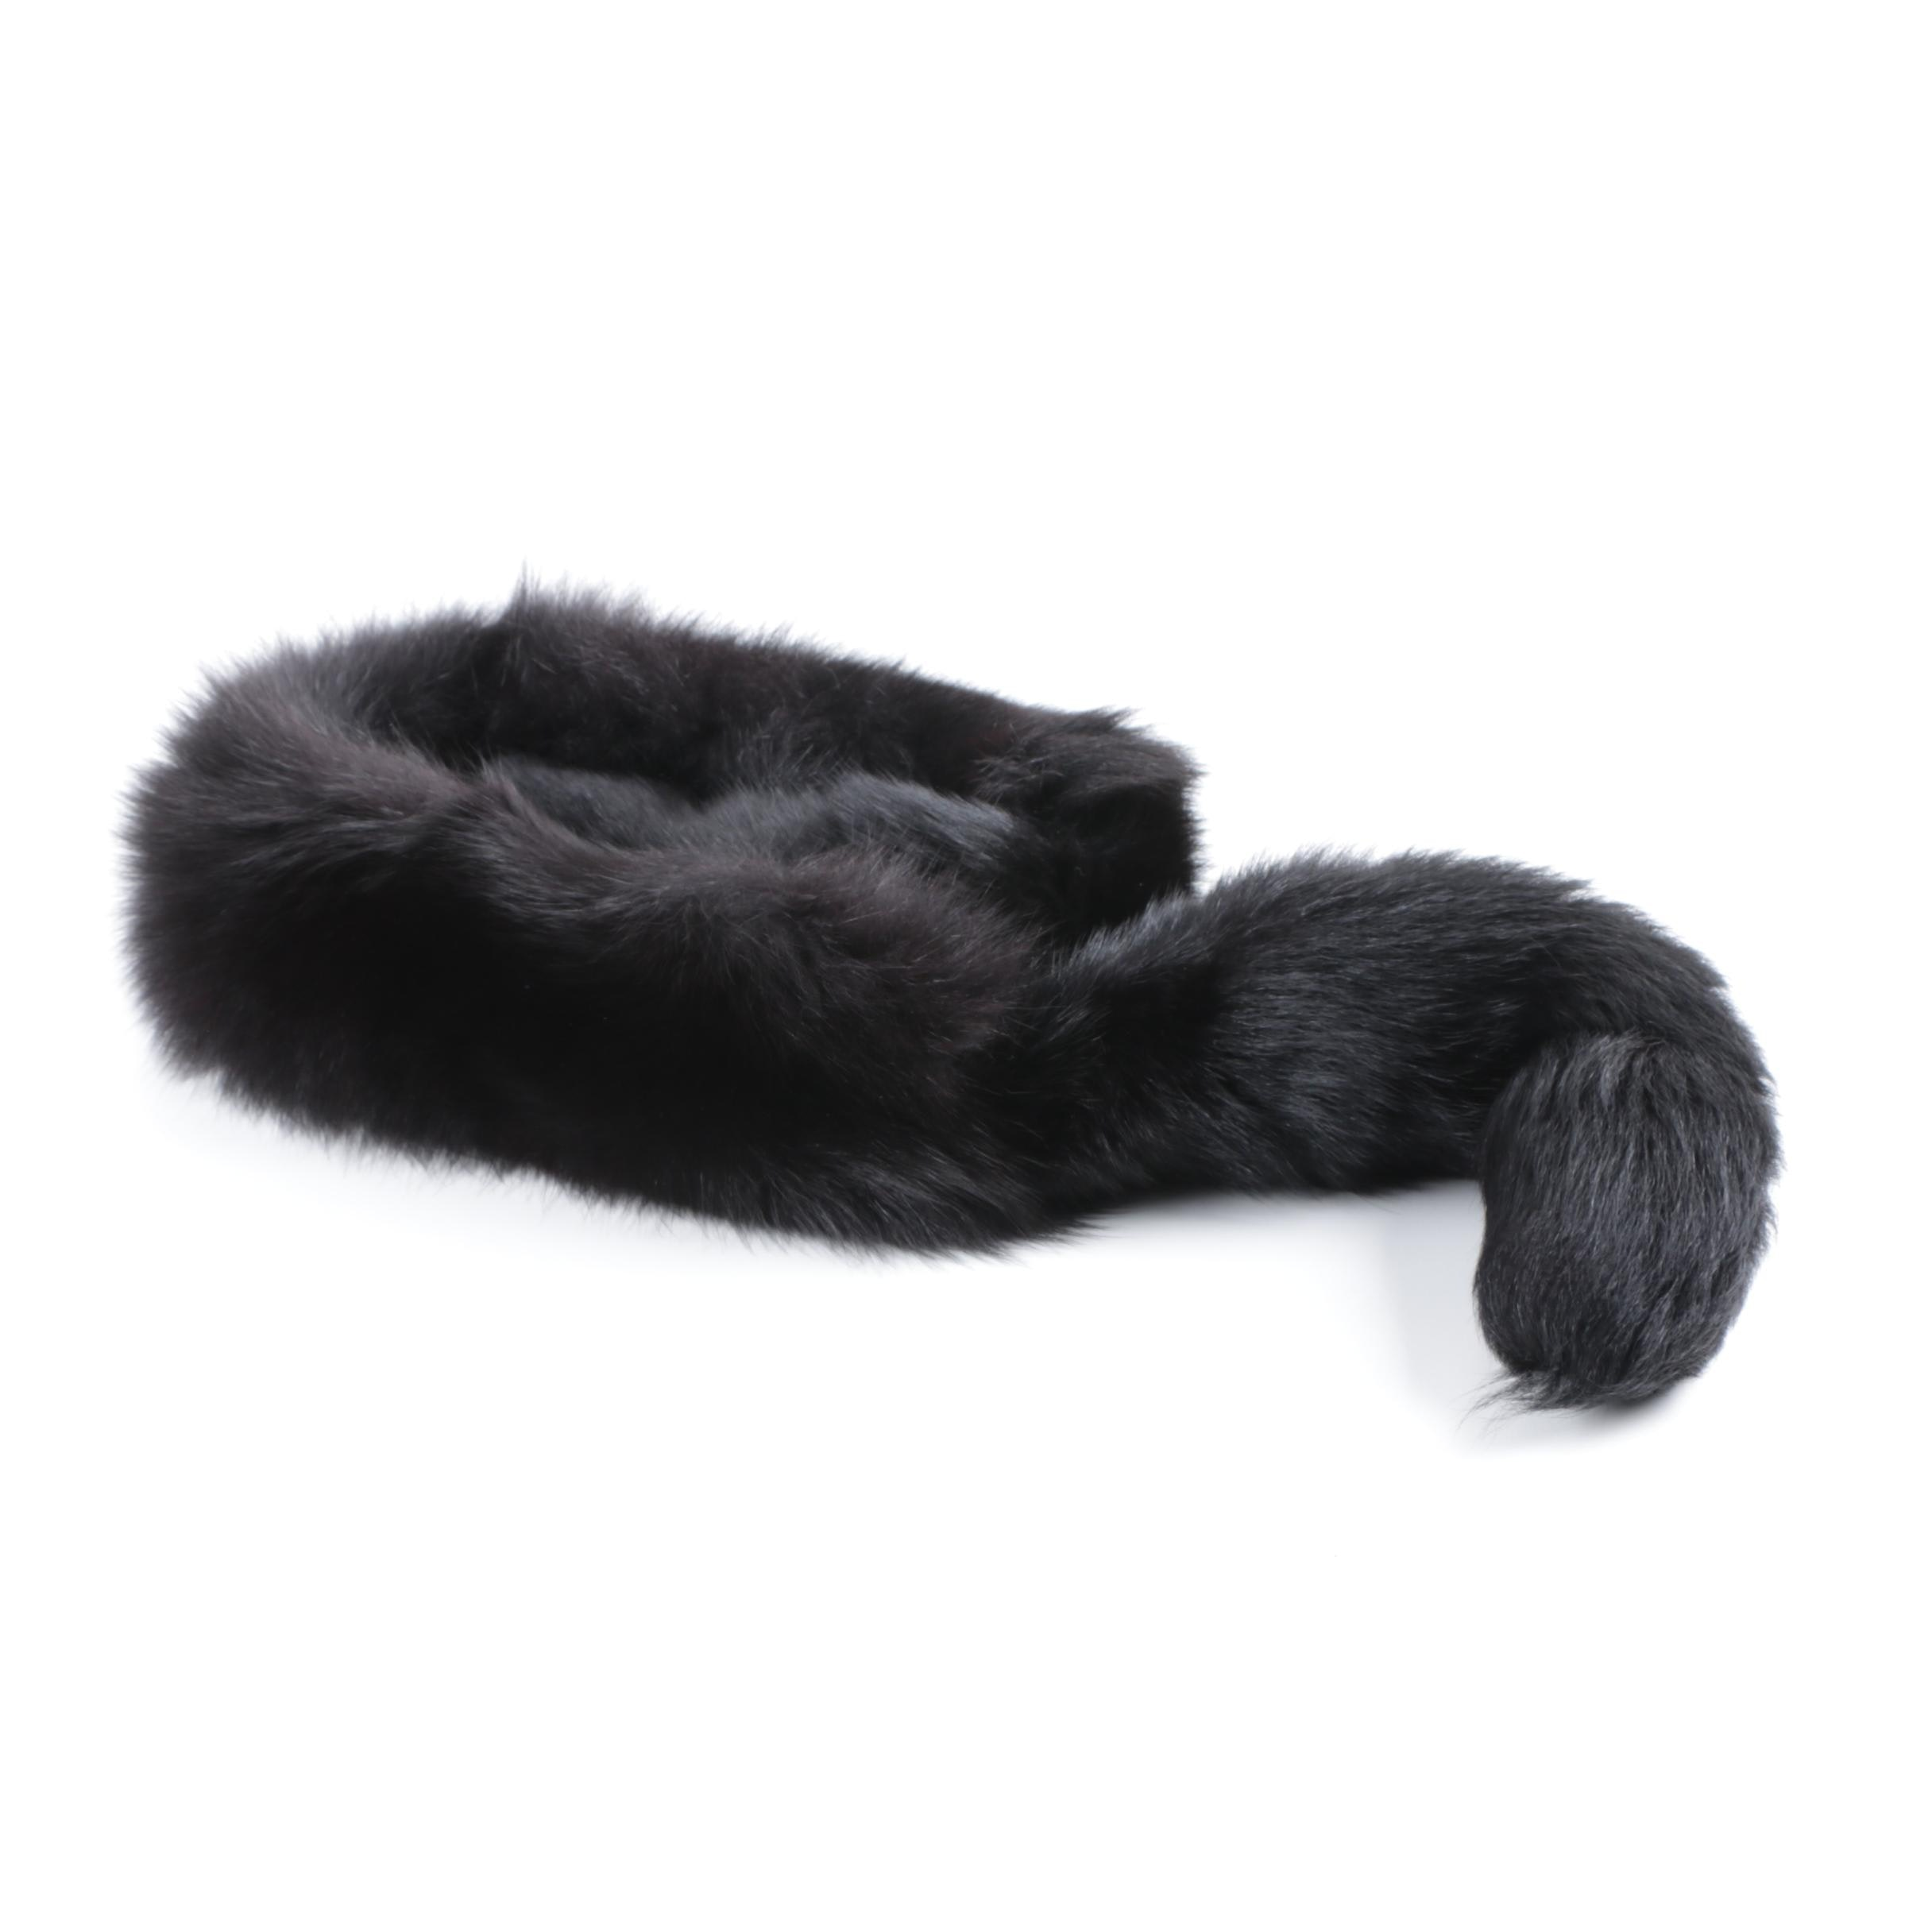 Vintage Don Anderson Dyed Black Fox Fur Scarf